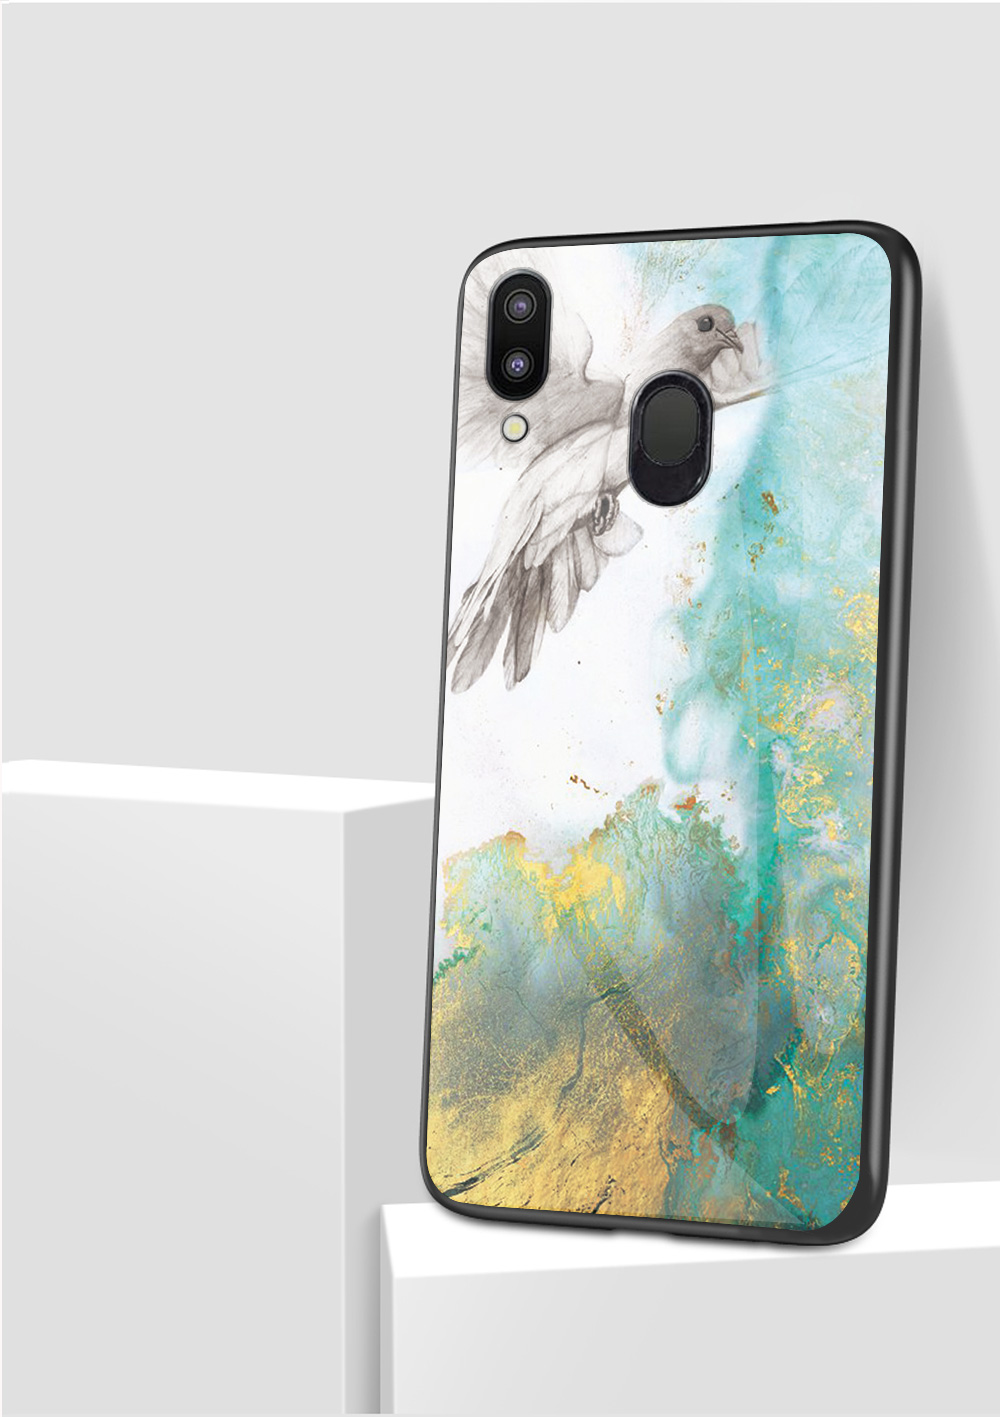 100pcs lot Marble Pattern Tempered Glass Soft TPU Frame Cases for Samsung Galaxy M10 M20 A30